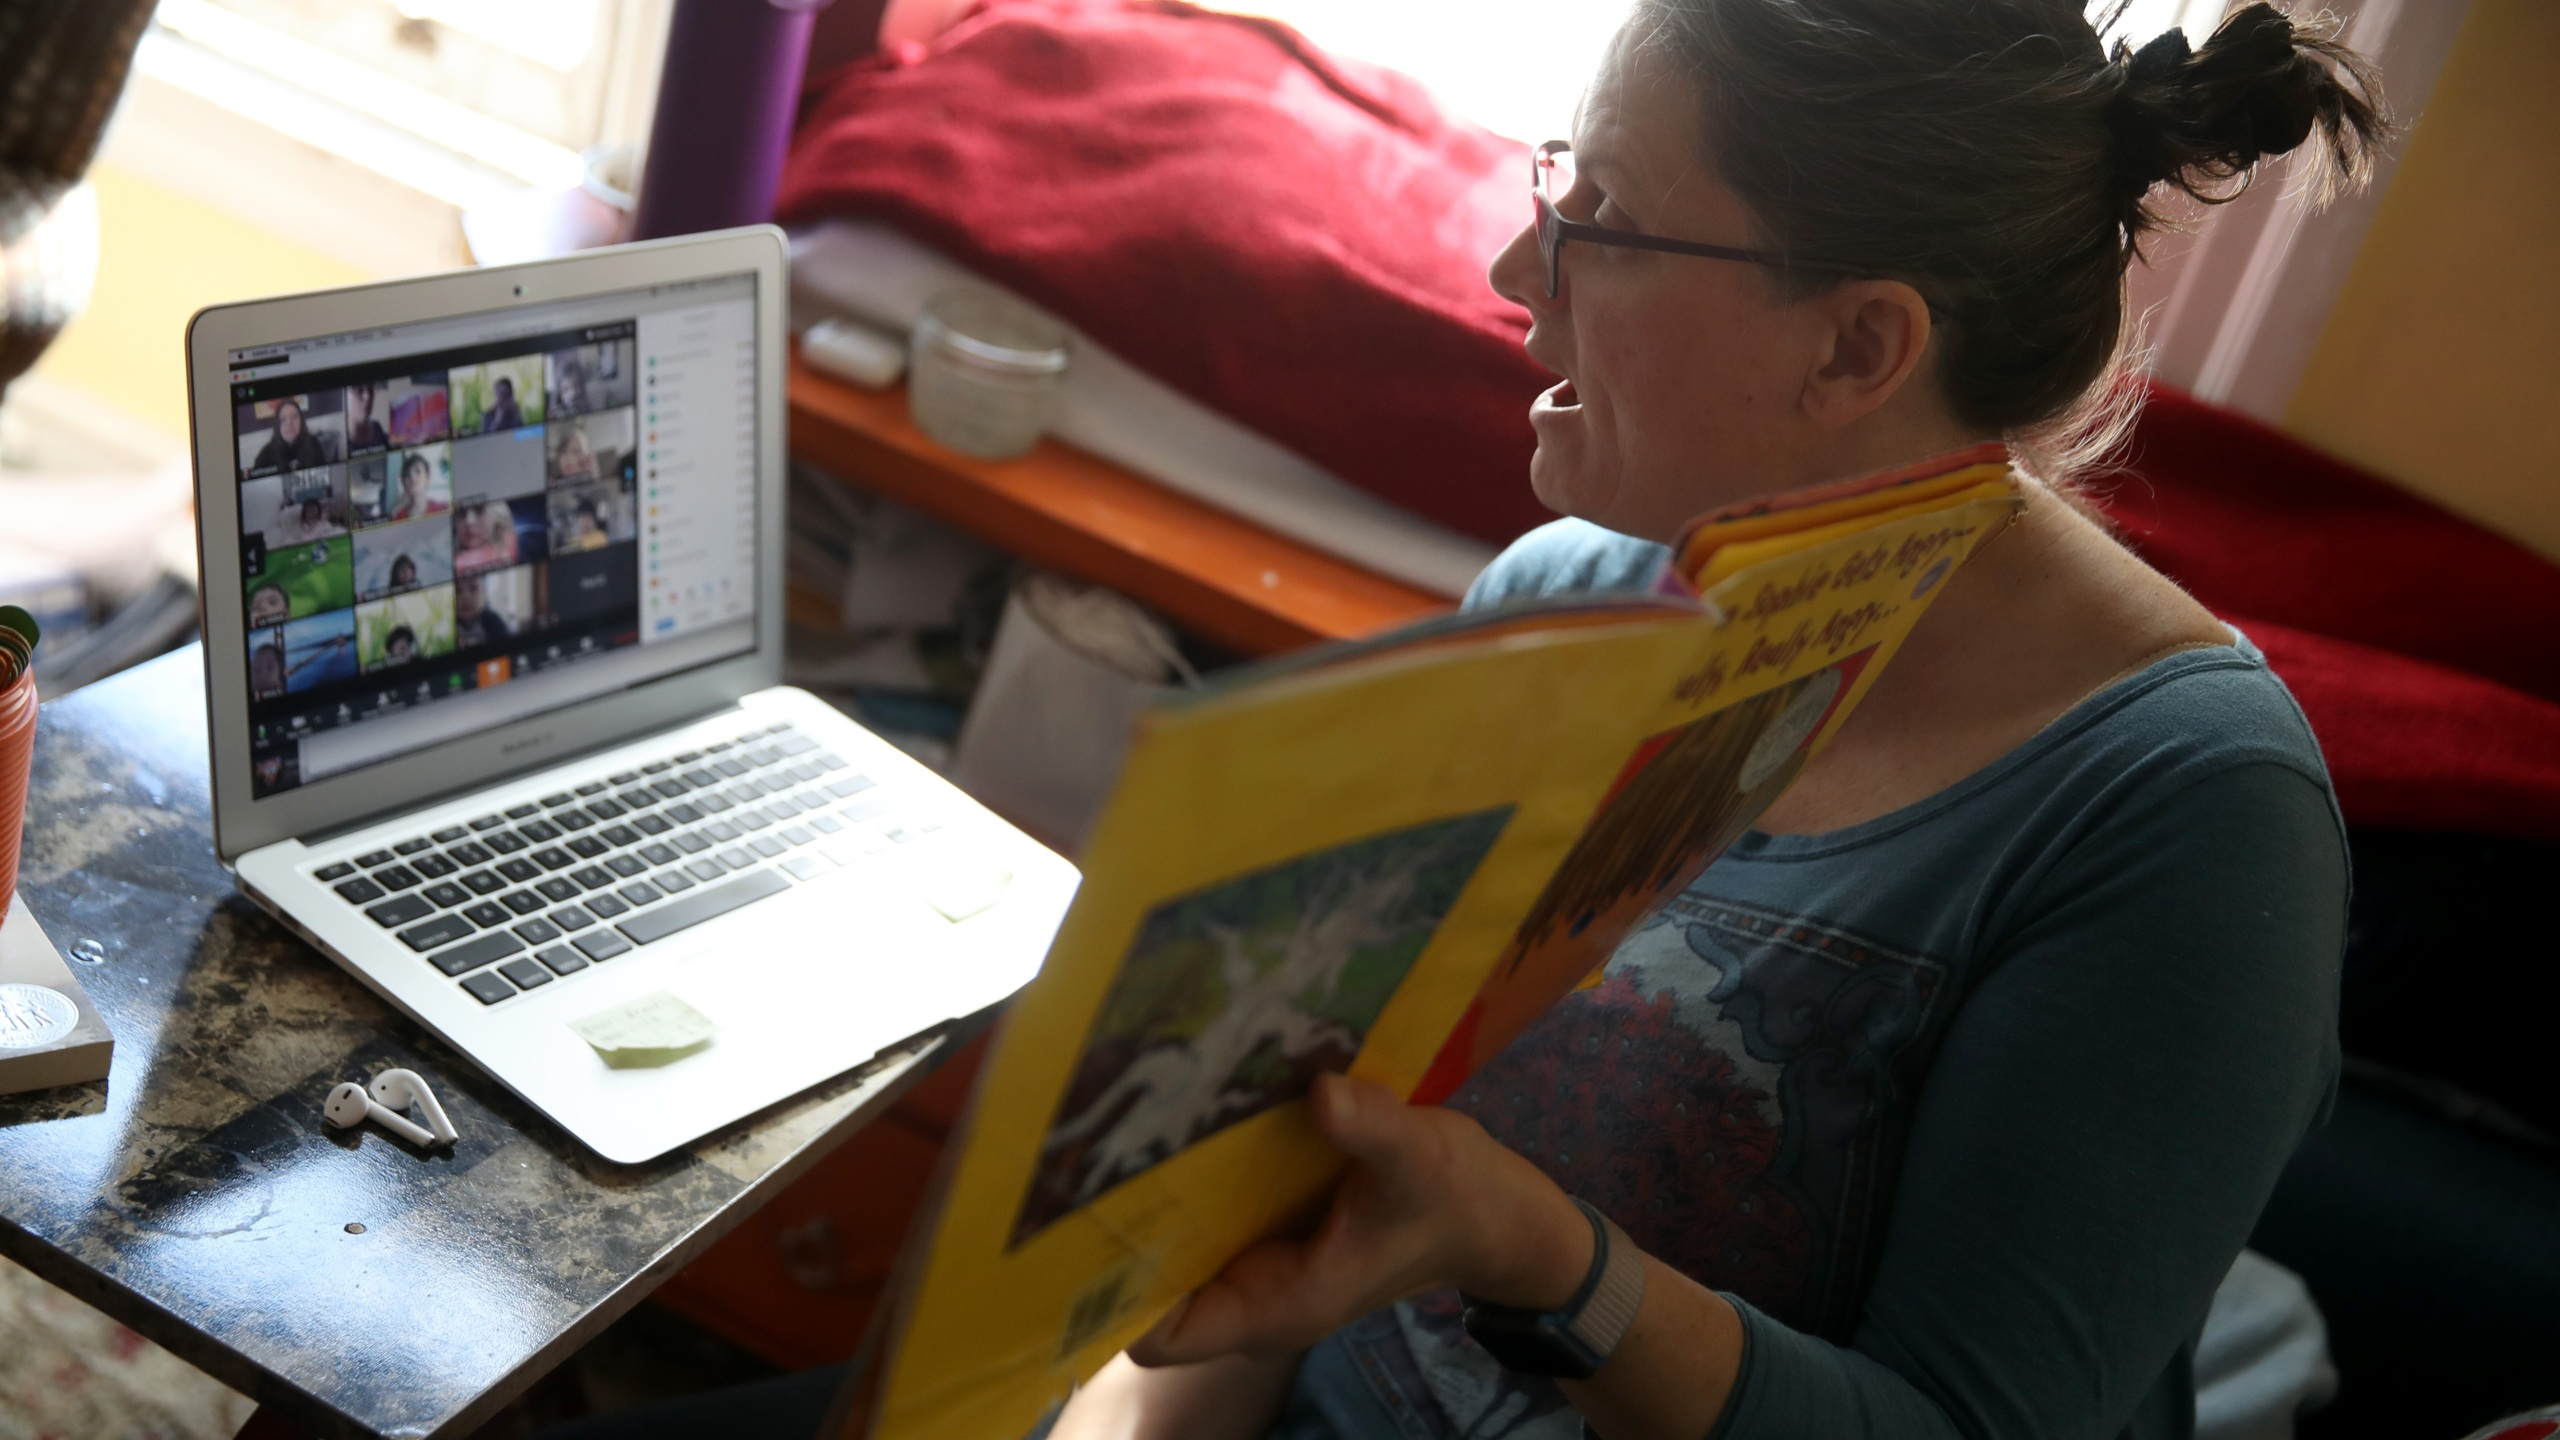 Leanne Francis, first grade teacher at Harvey Milk Civil Rights Academy, conducts an online class from her living room on March 20, 2020 in San Francisco, California. (Justin Sullivan/Getty Images)